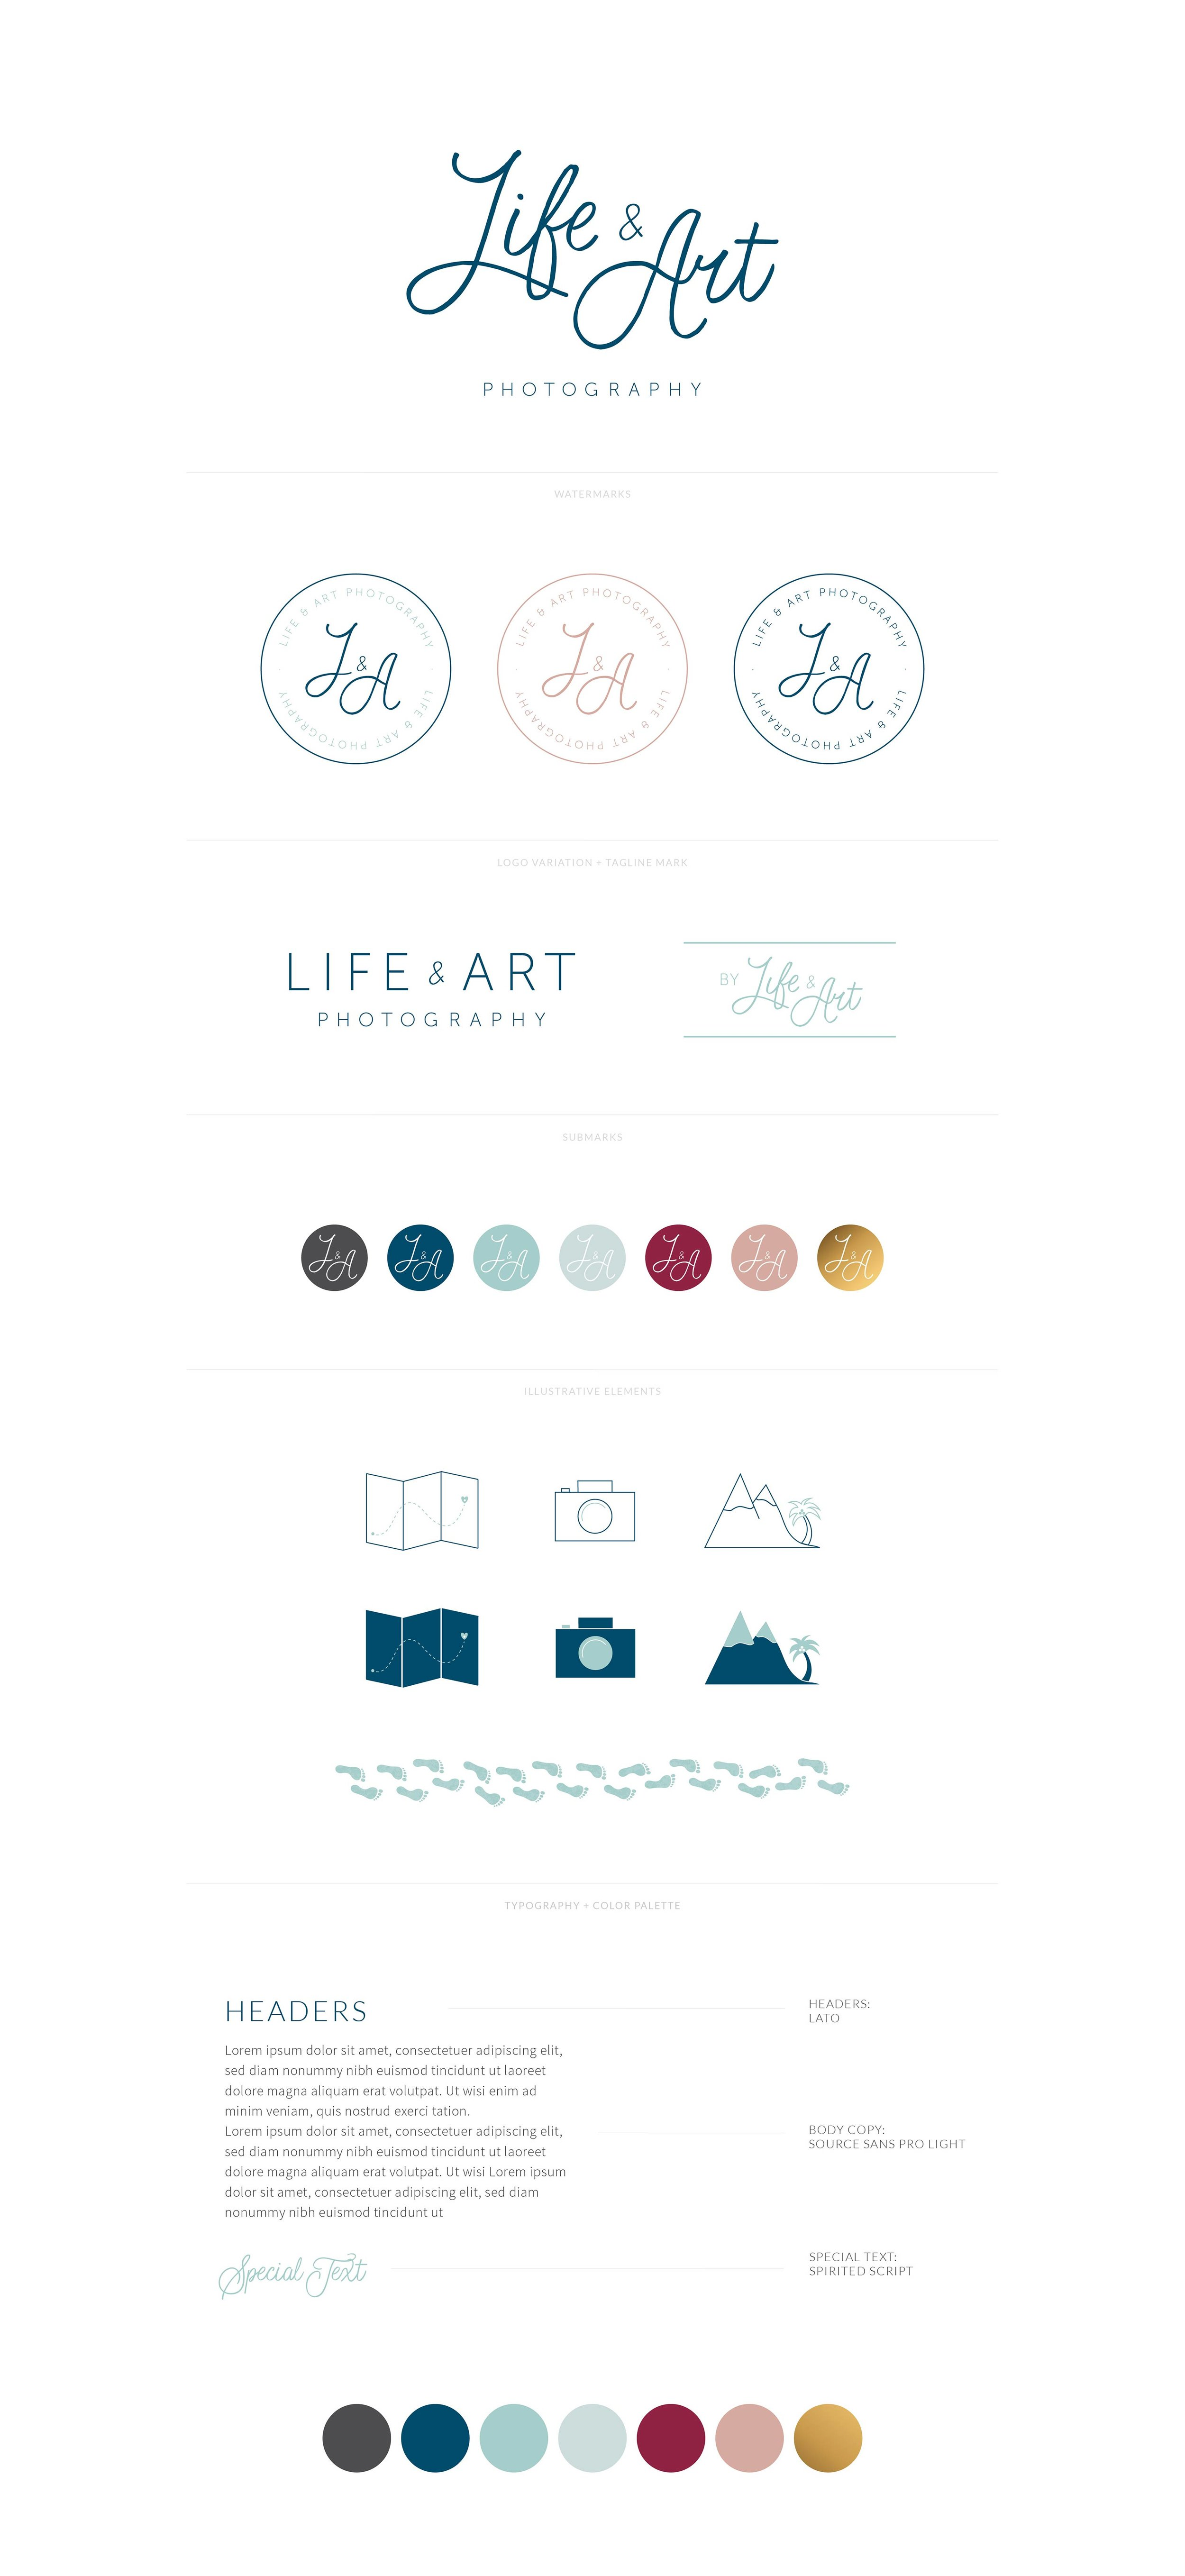 Life & Art Photography | Logo, Watermark, Favicon, Custom Illustrative Icons, Font Styling, Color Palette | Adventurous, Youthful, and Relaxed Wedding Photography Branding by AllieMarie Design